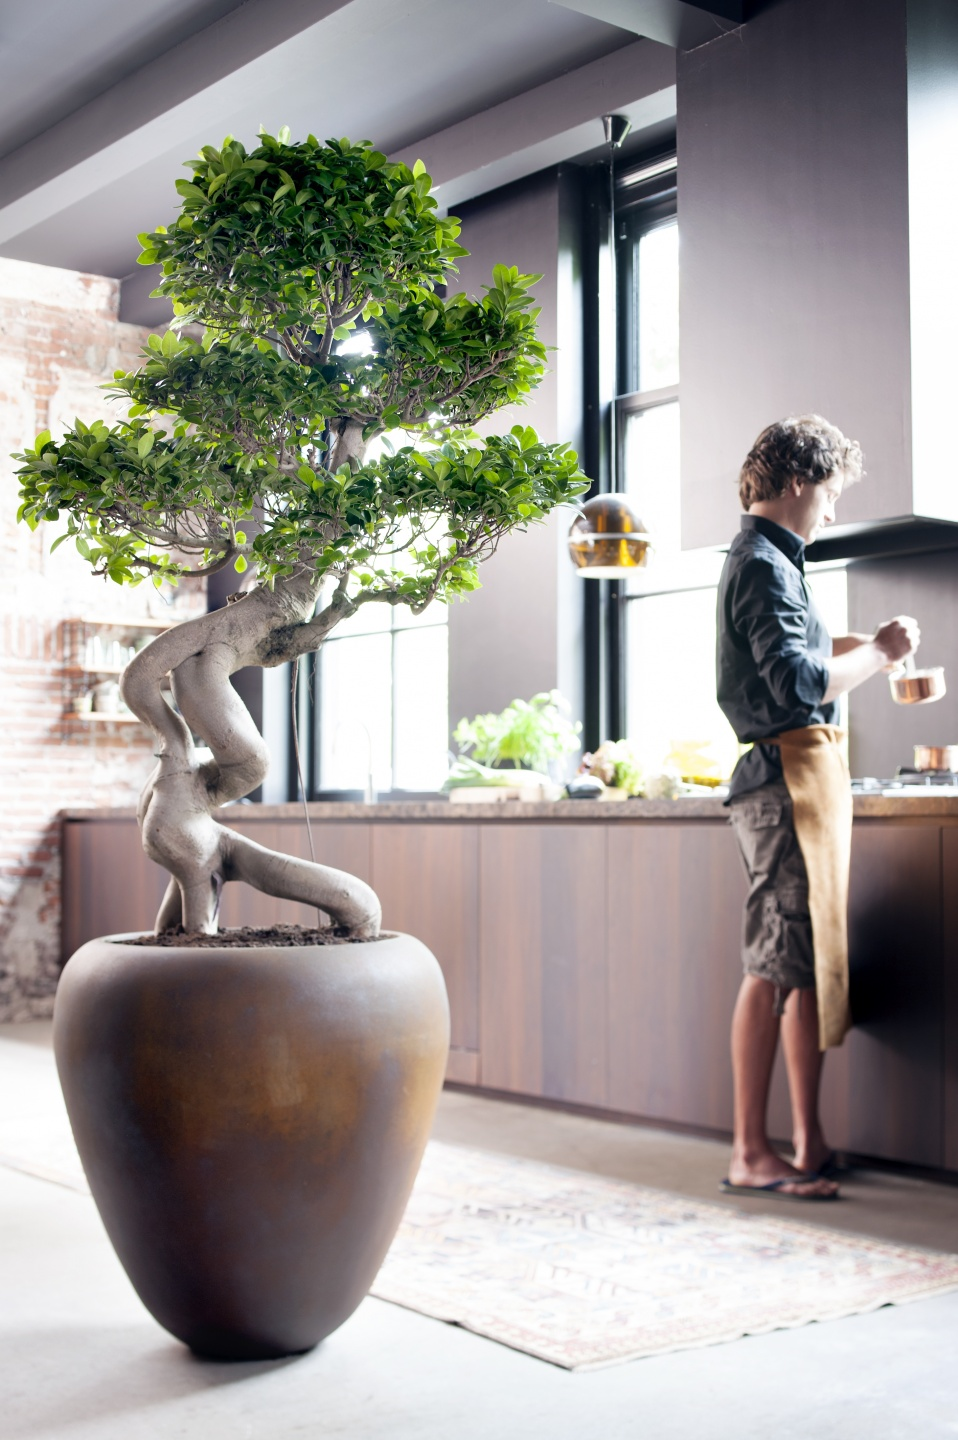 Ficus Ginseng Bonsai July 2015 The Ficus Ginseng Is Houseplant Of The Month Flower